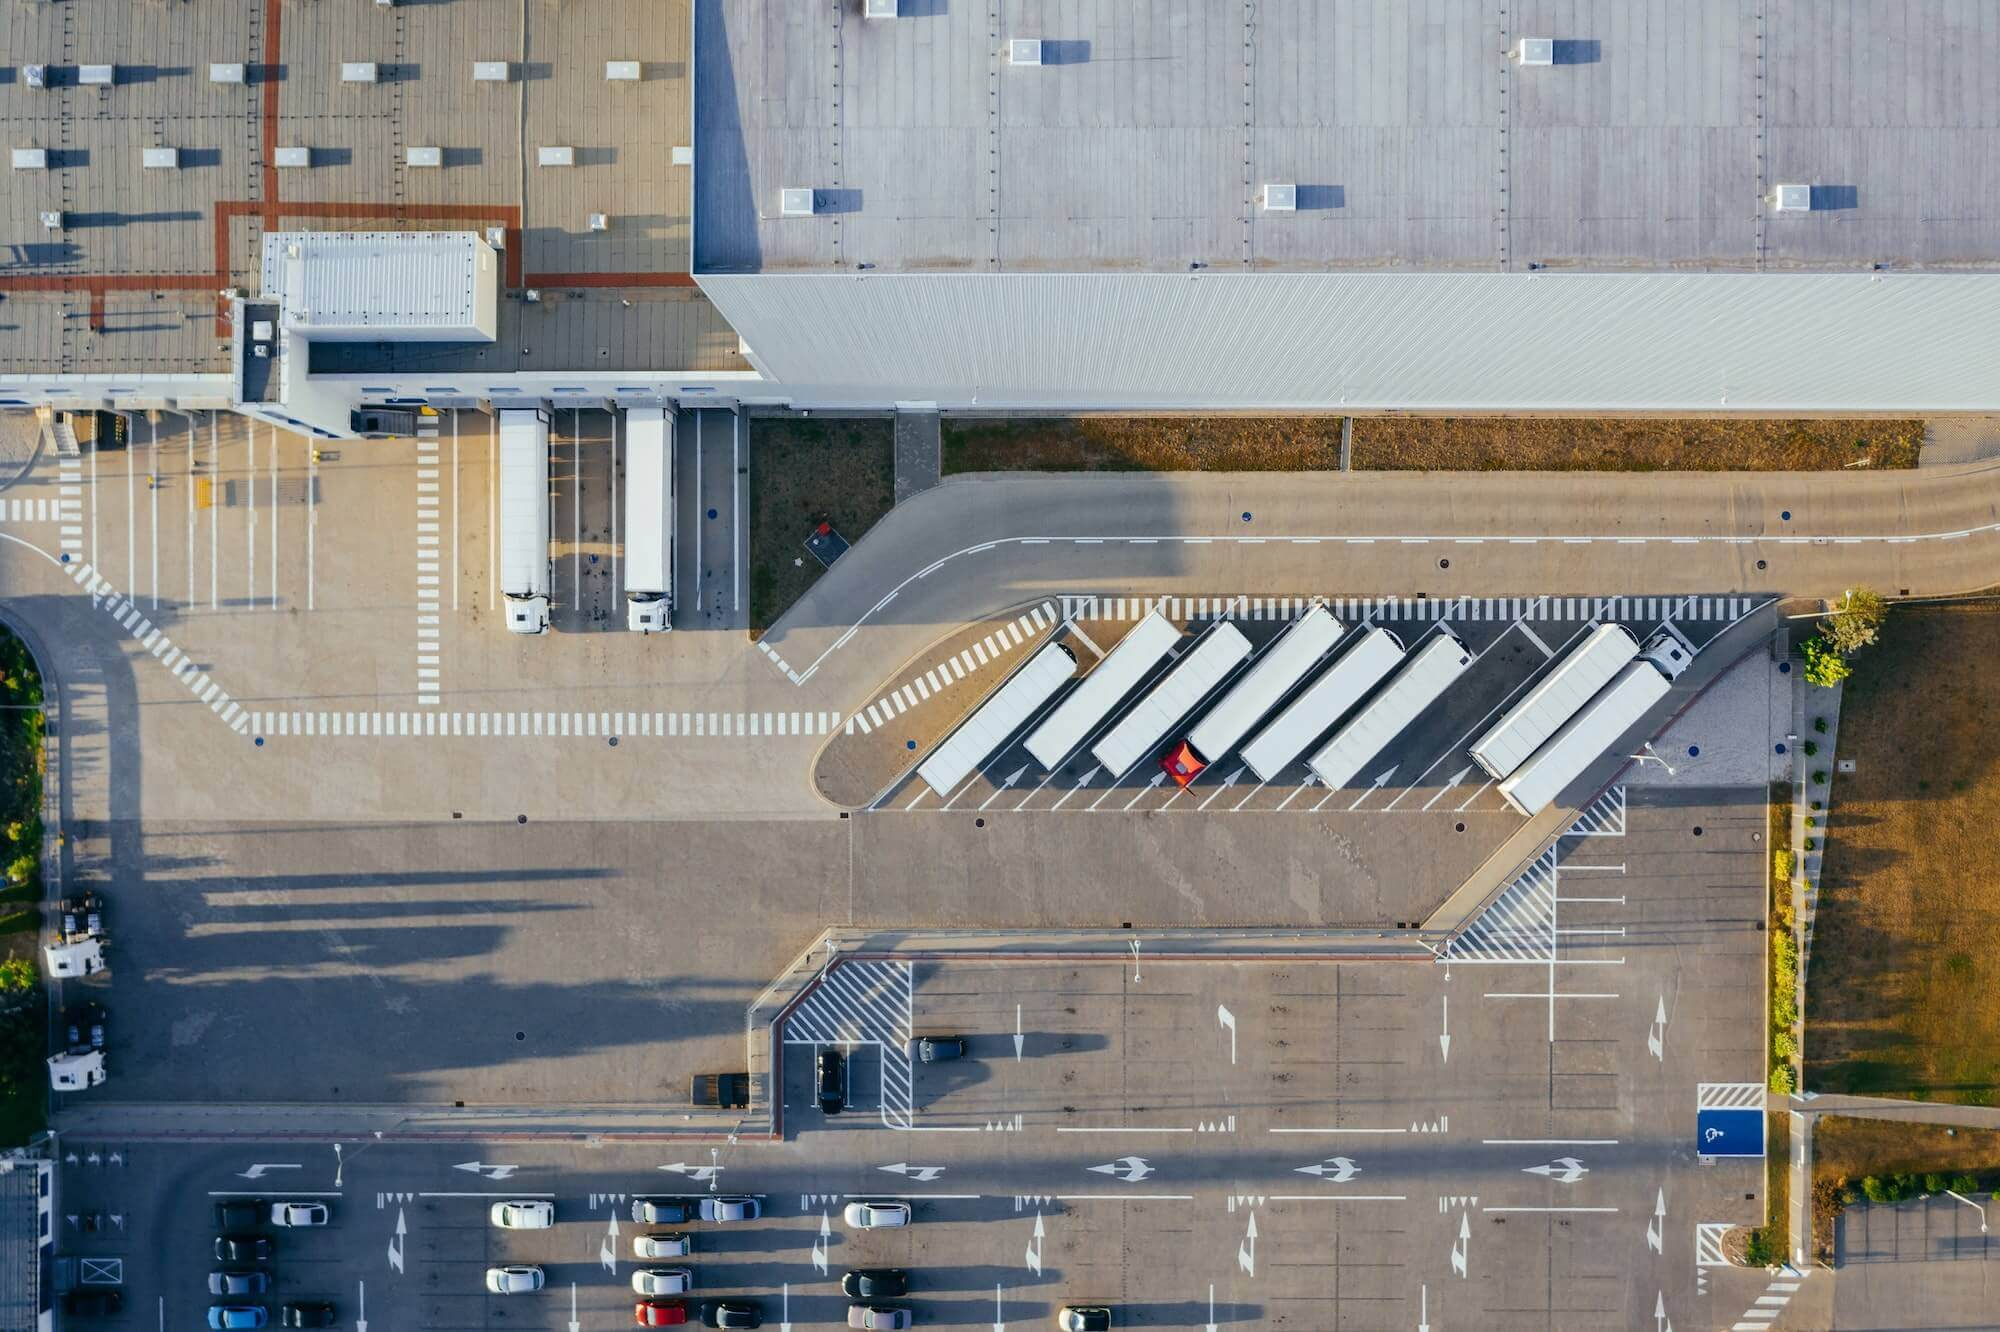 Overhead view of a warehouse loading bay